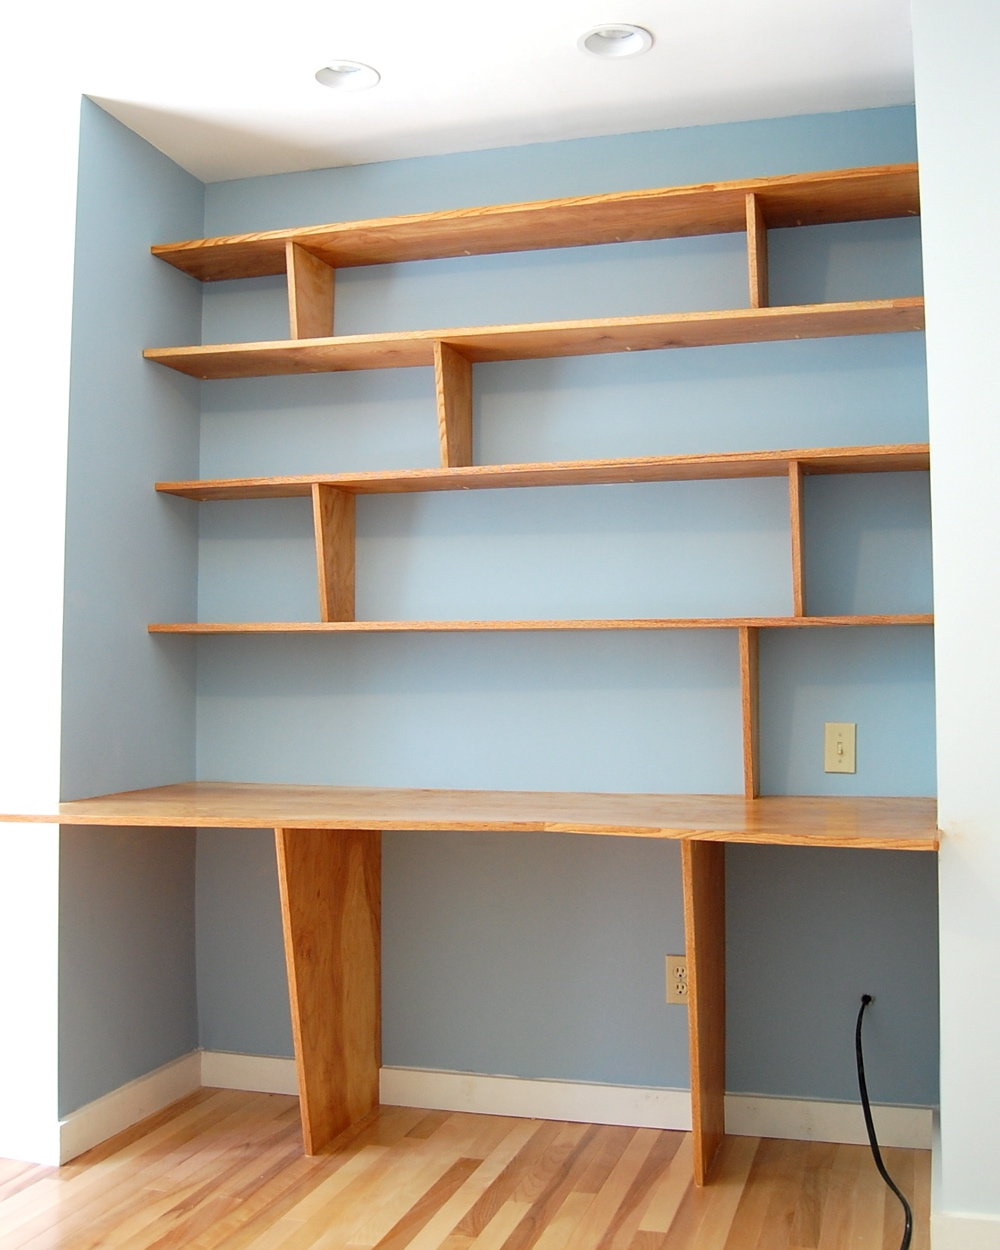 Popular Photo of Study Shelving